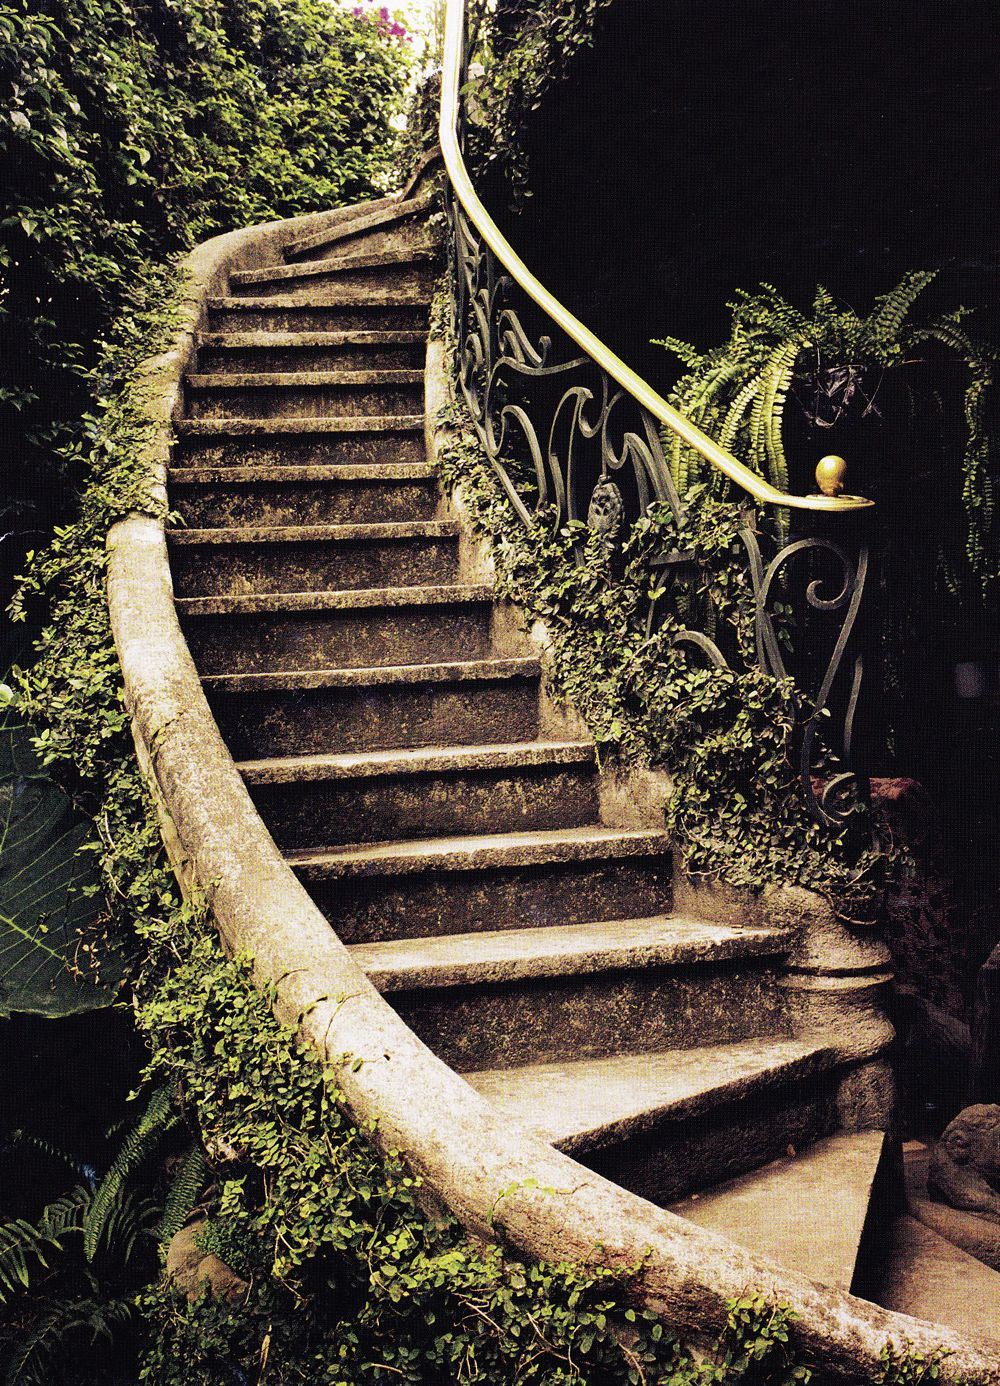 40 cool garden stair ideas for inspiration garden stairs gardens garden stair more workwithnaturefo